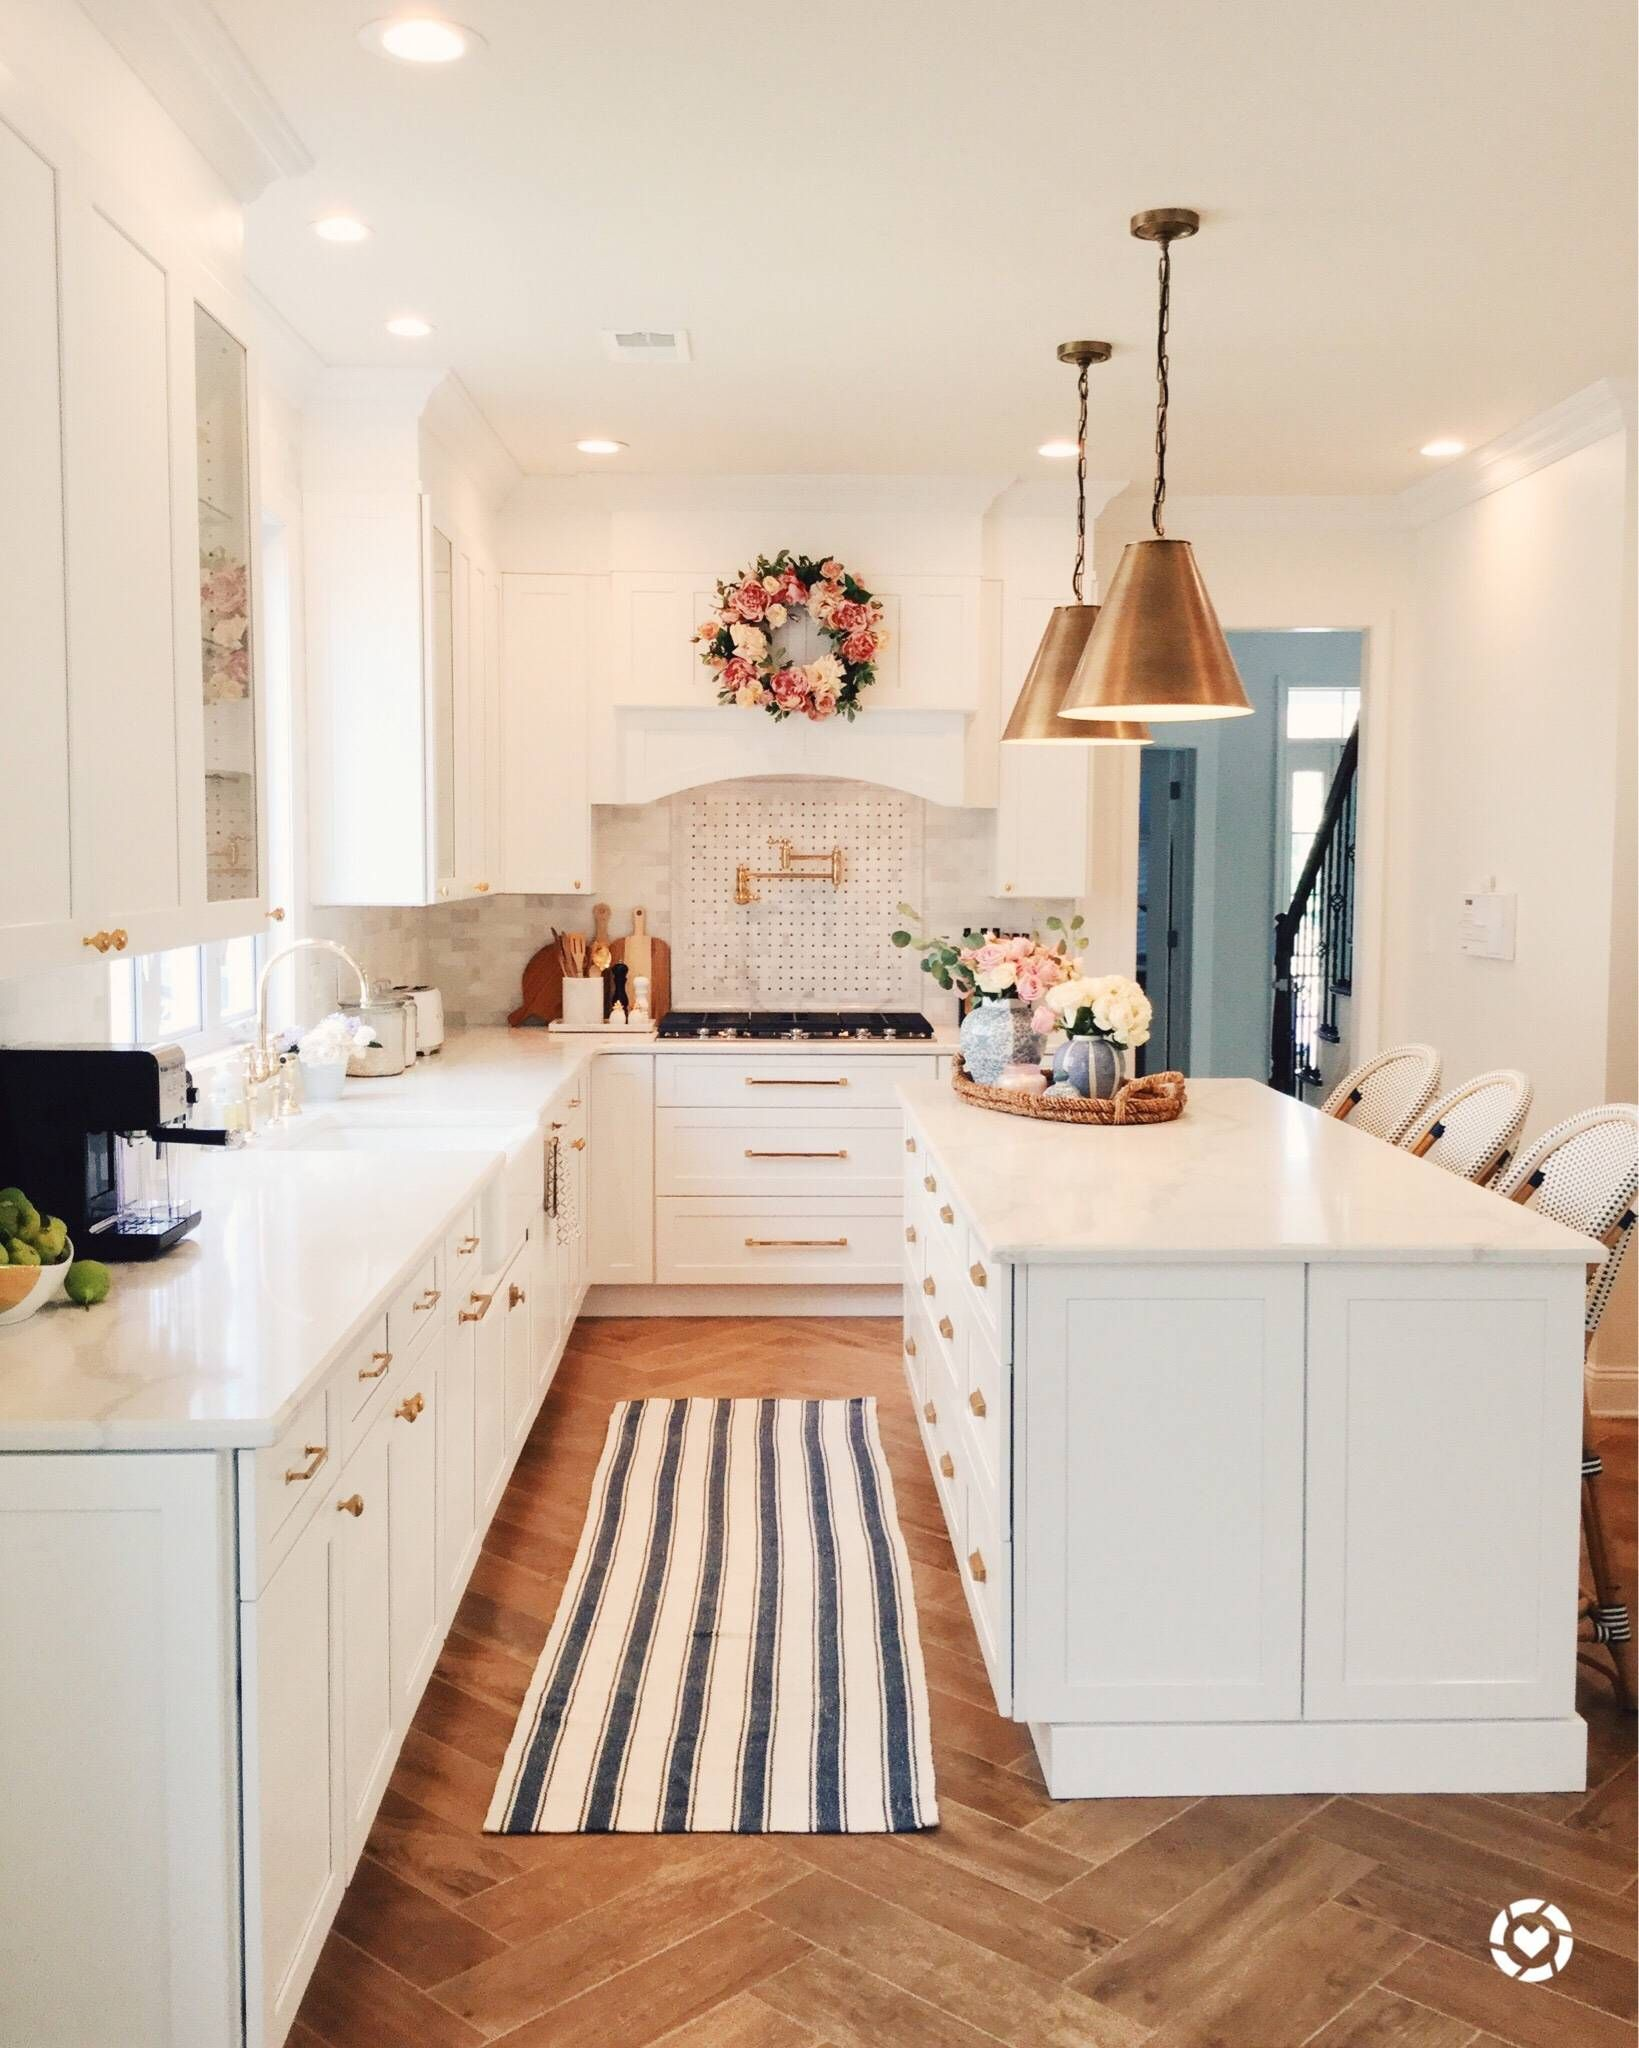 7 Decor Mistakes To Avoid In A Small Home: Kitchen Remodel Tips: How To Create A Beautiful And